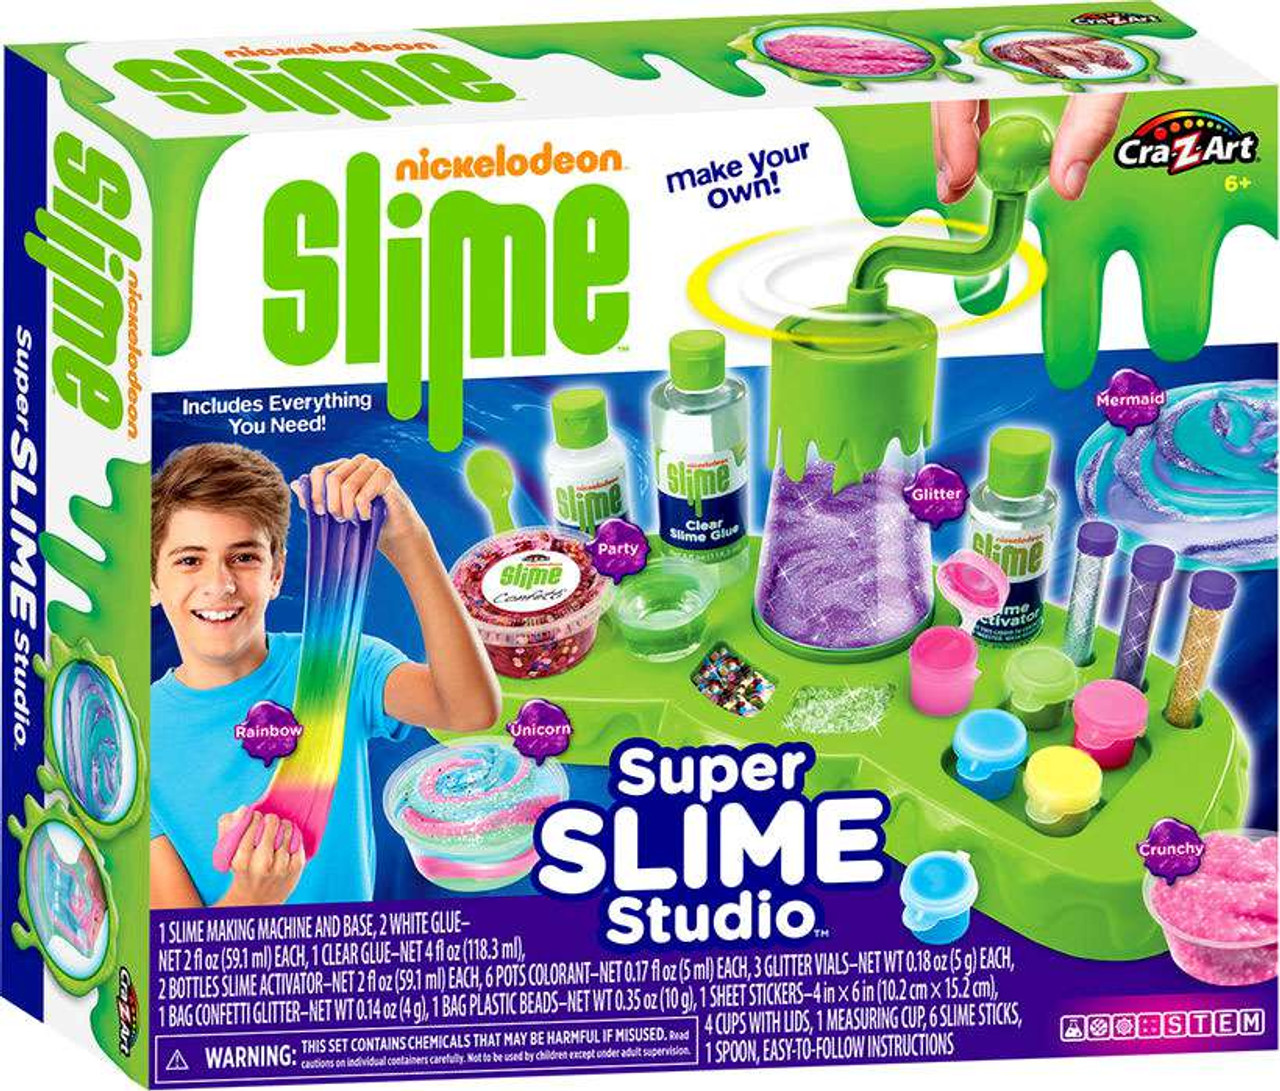 Nickelodeon Super Slime Studio Kit Damaged Package